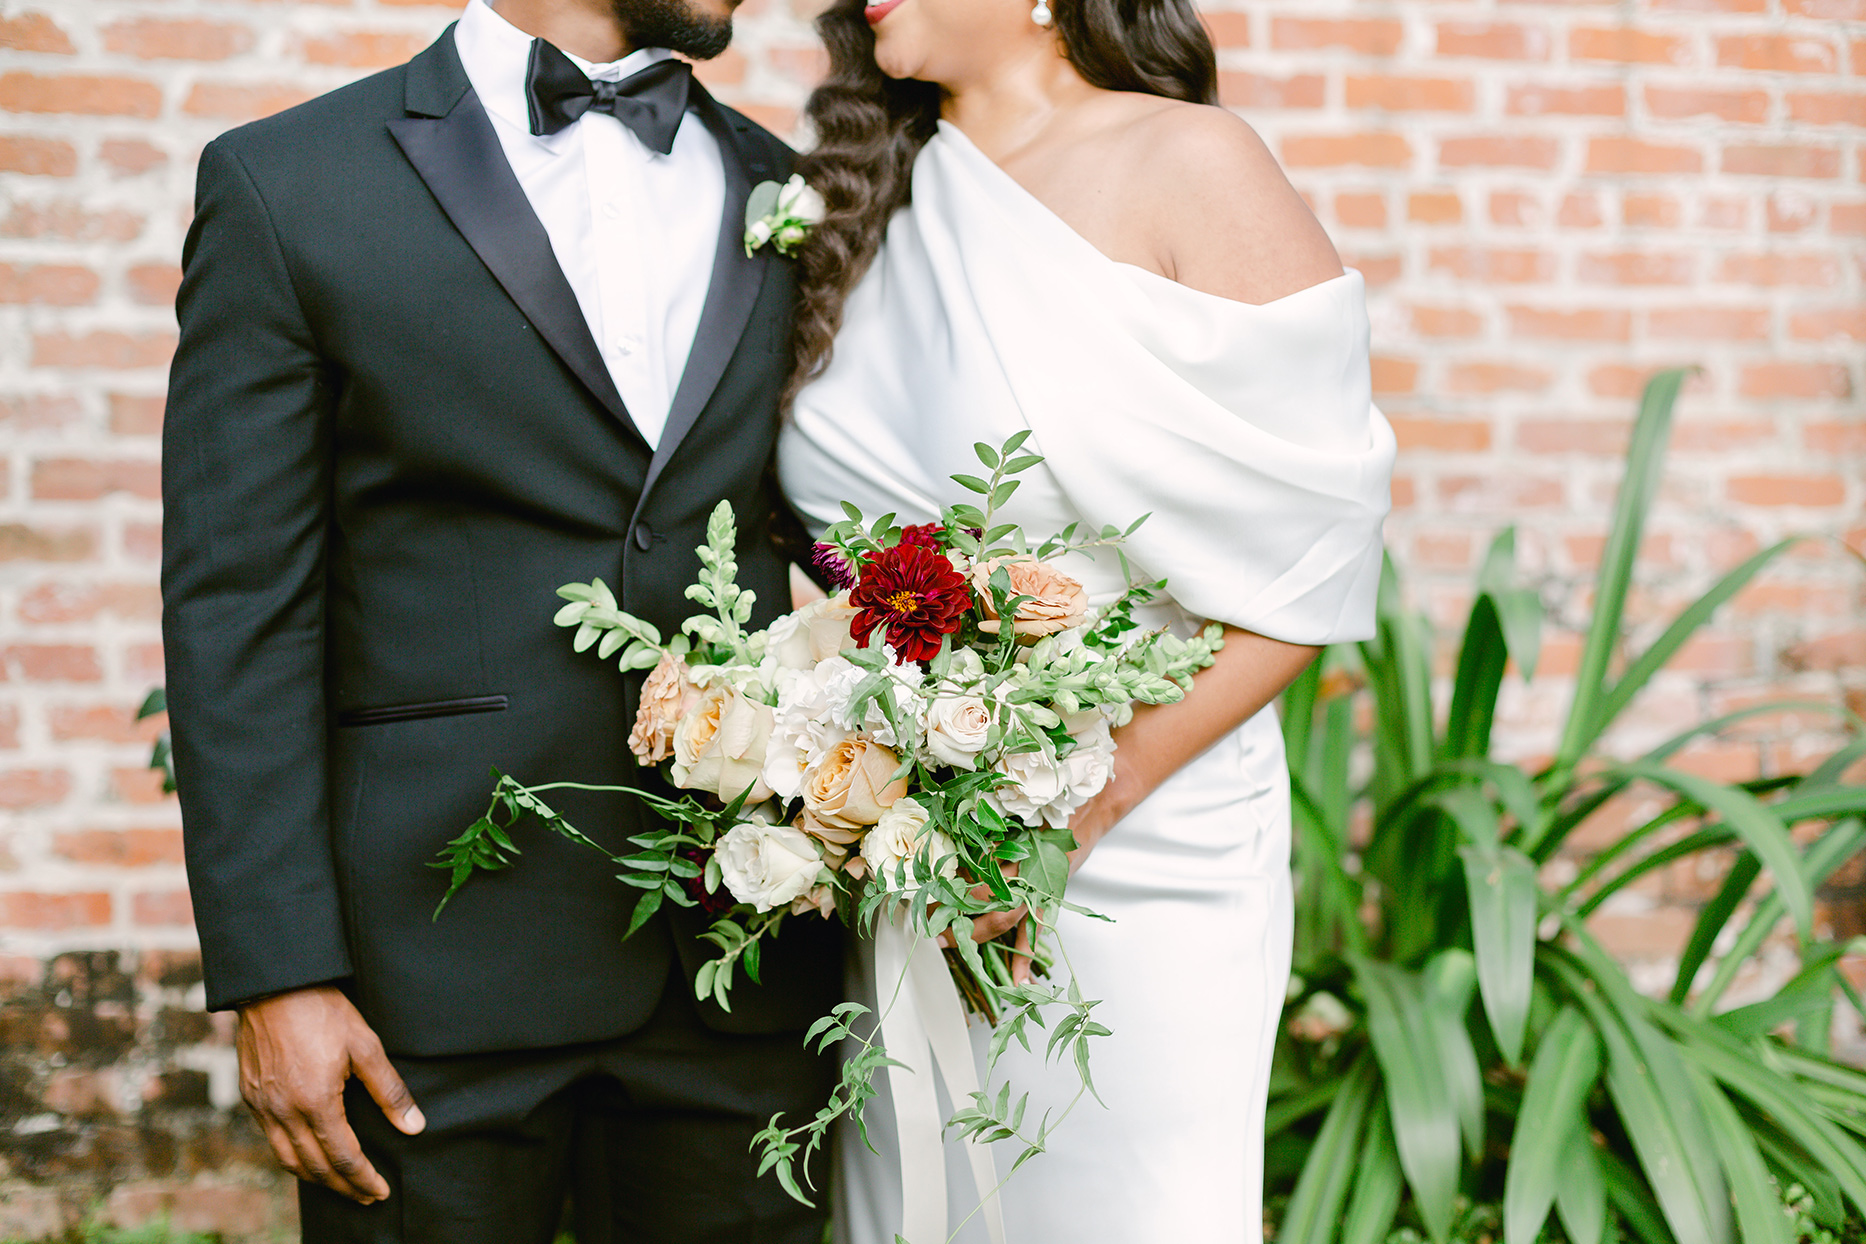 bride and groom with large floral wedding bouquet